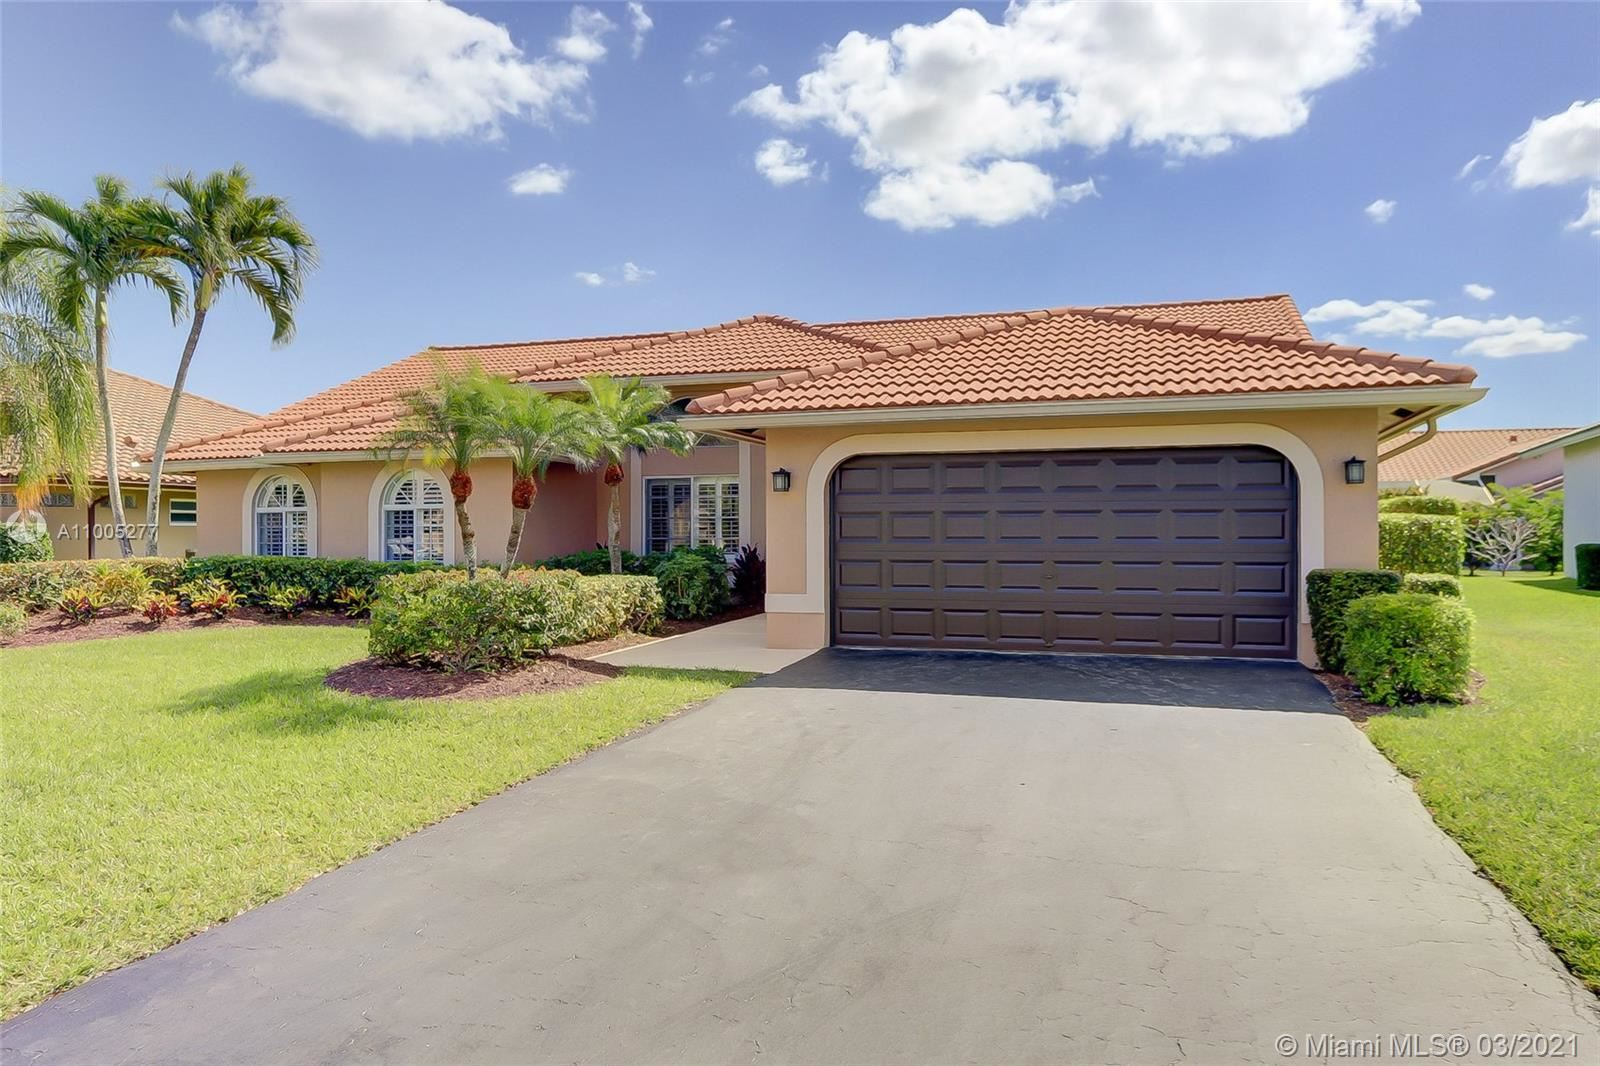 5338 NW 108th Way, Coral Springs, FL 33076 - #: A11005277